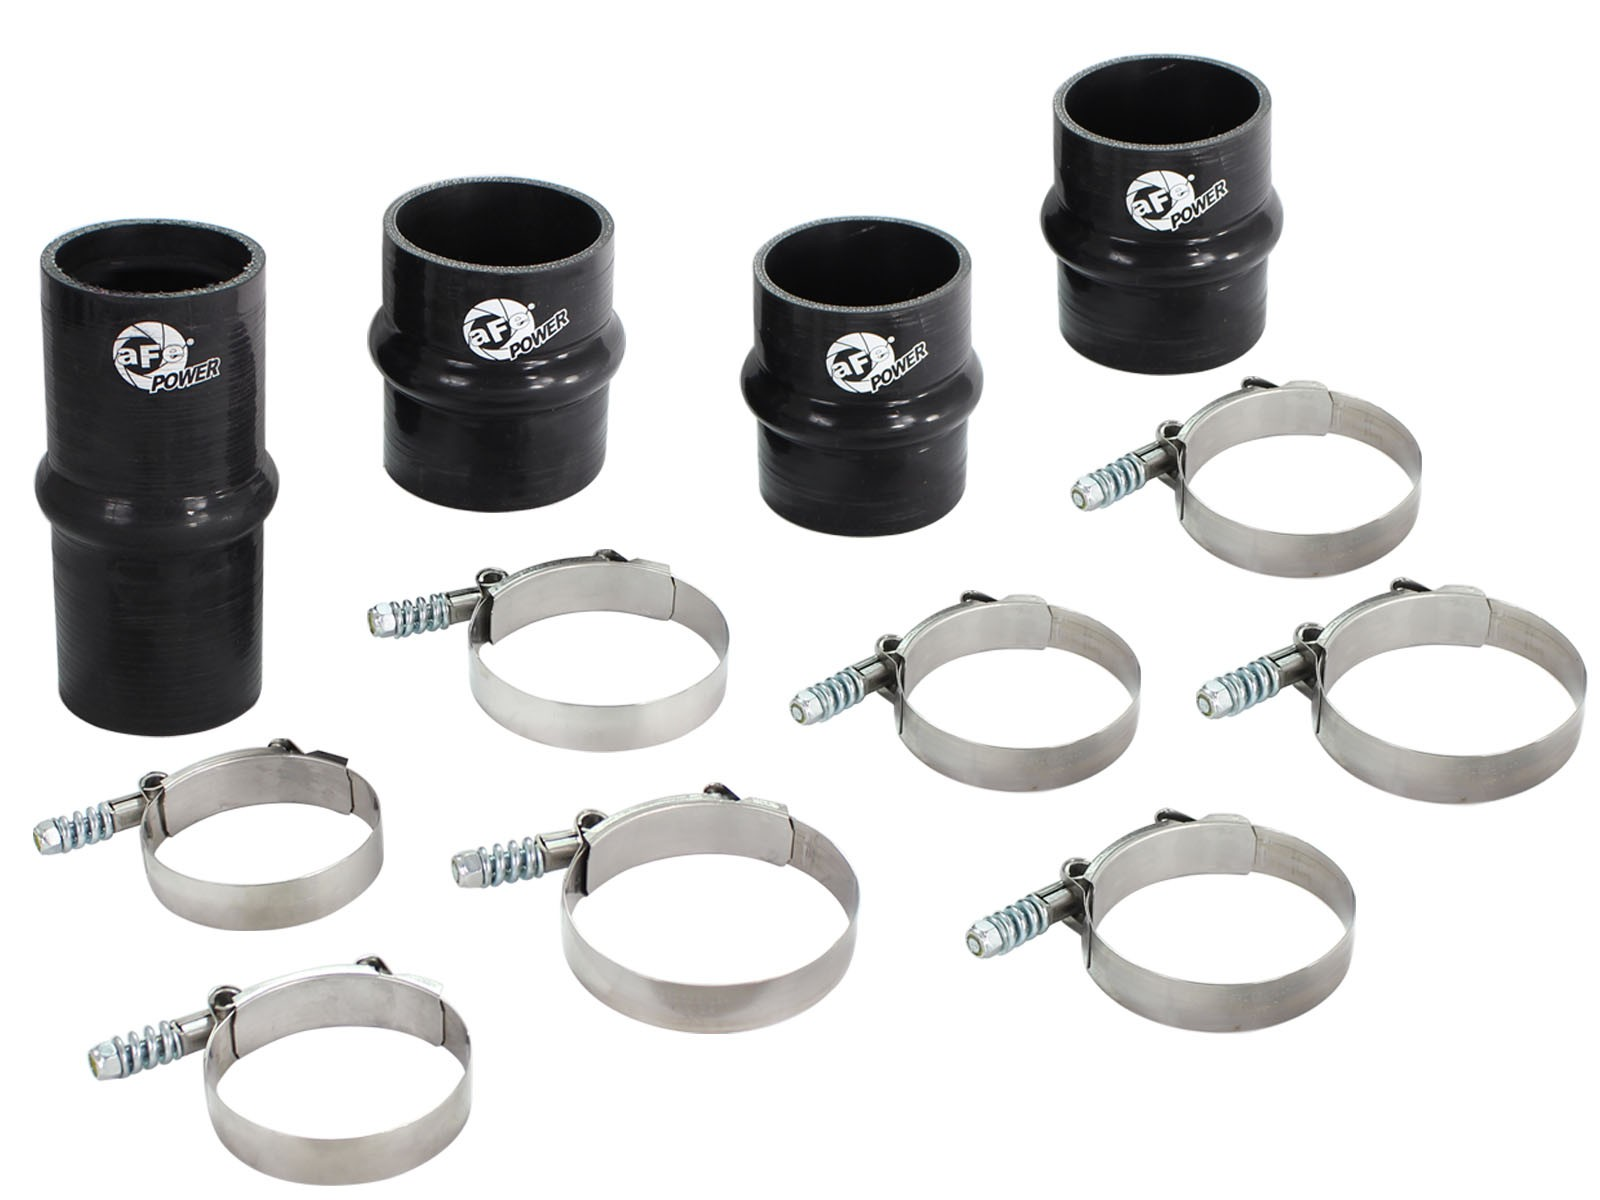 BladeRunner Intercooler Couplings & Clamps Kit; aFe & Factory Replacement